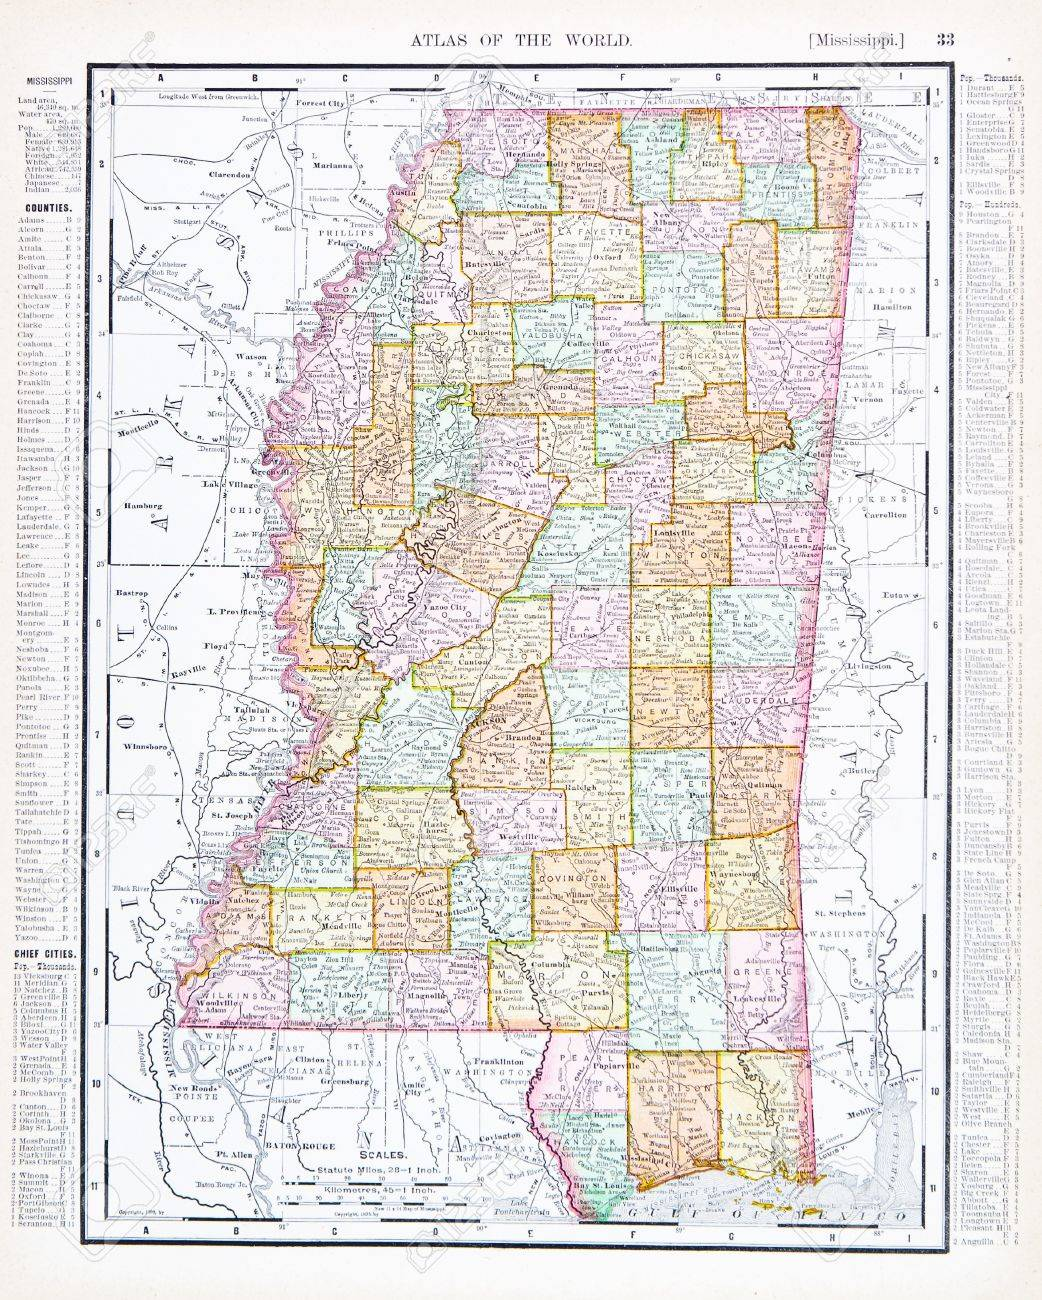 Mississippi Maps And Data MyOnlineMapscom MS Maps FileMap Of USA - Mississippi on us map